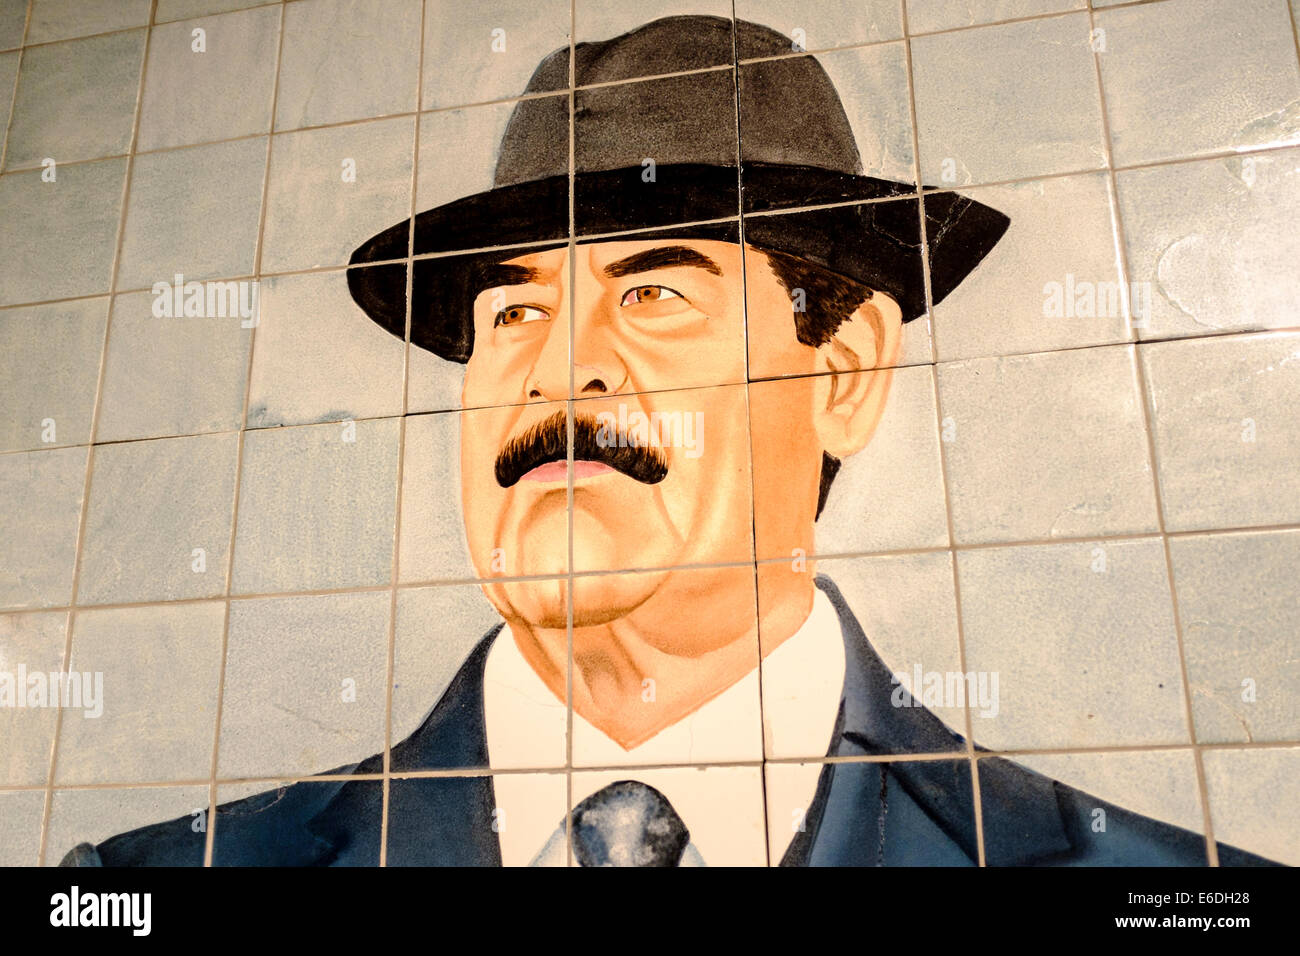 Tile mosaic of Saddam Hussein on display at the Imperial War museum, London, UK - Stock Image